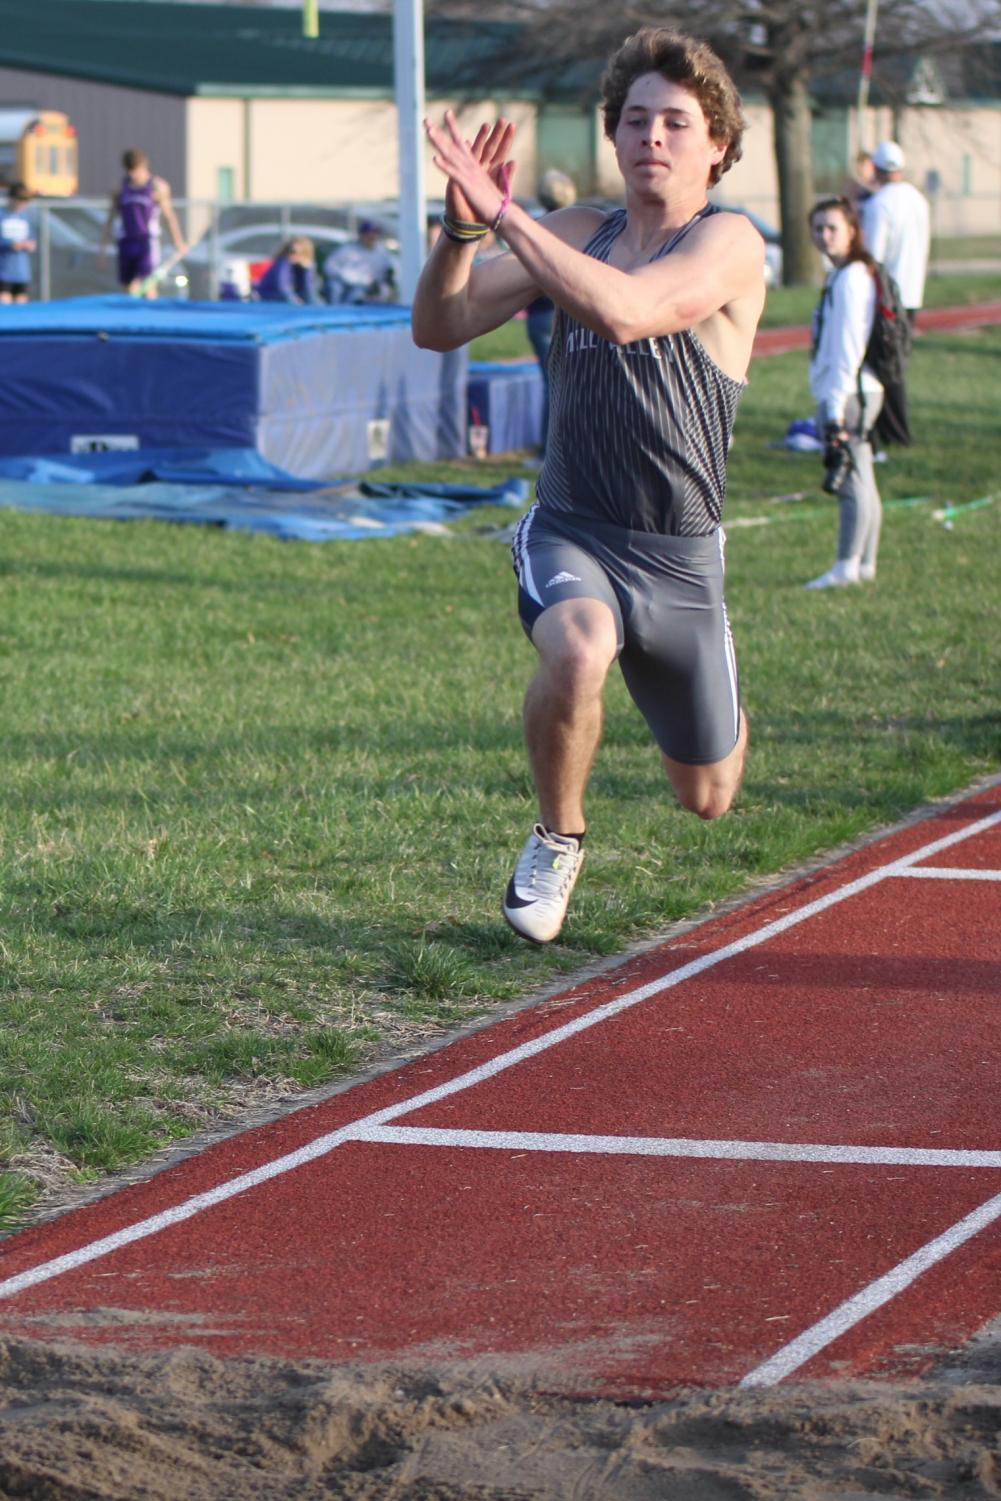 Jumping+forward%2C+senior+Steven+Colling+competes+in+the+long+jump+event.